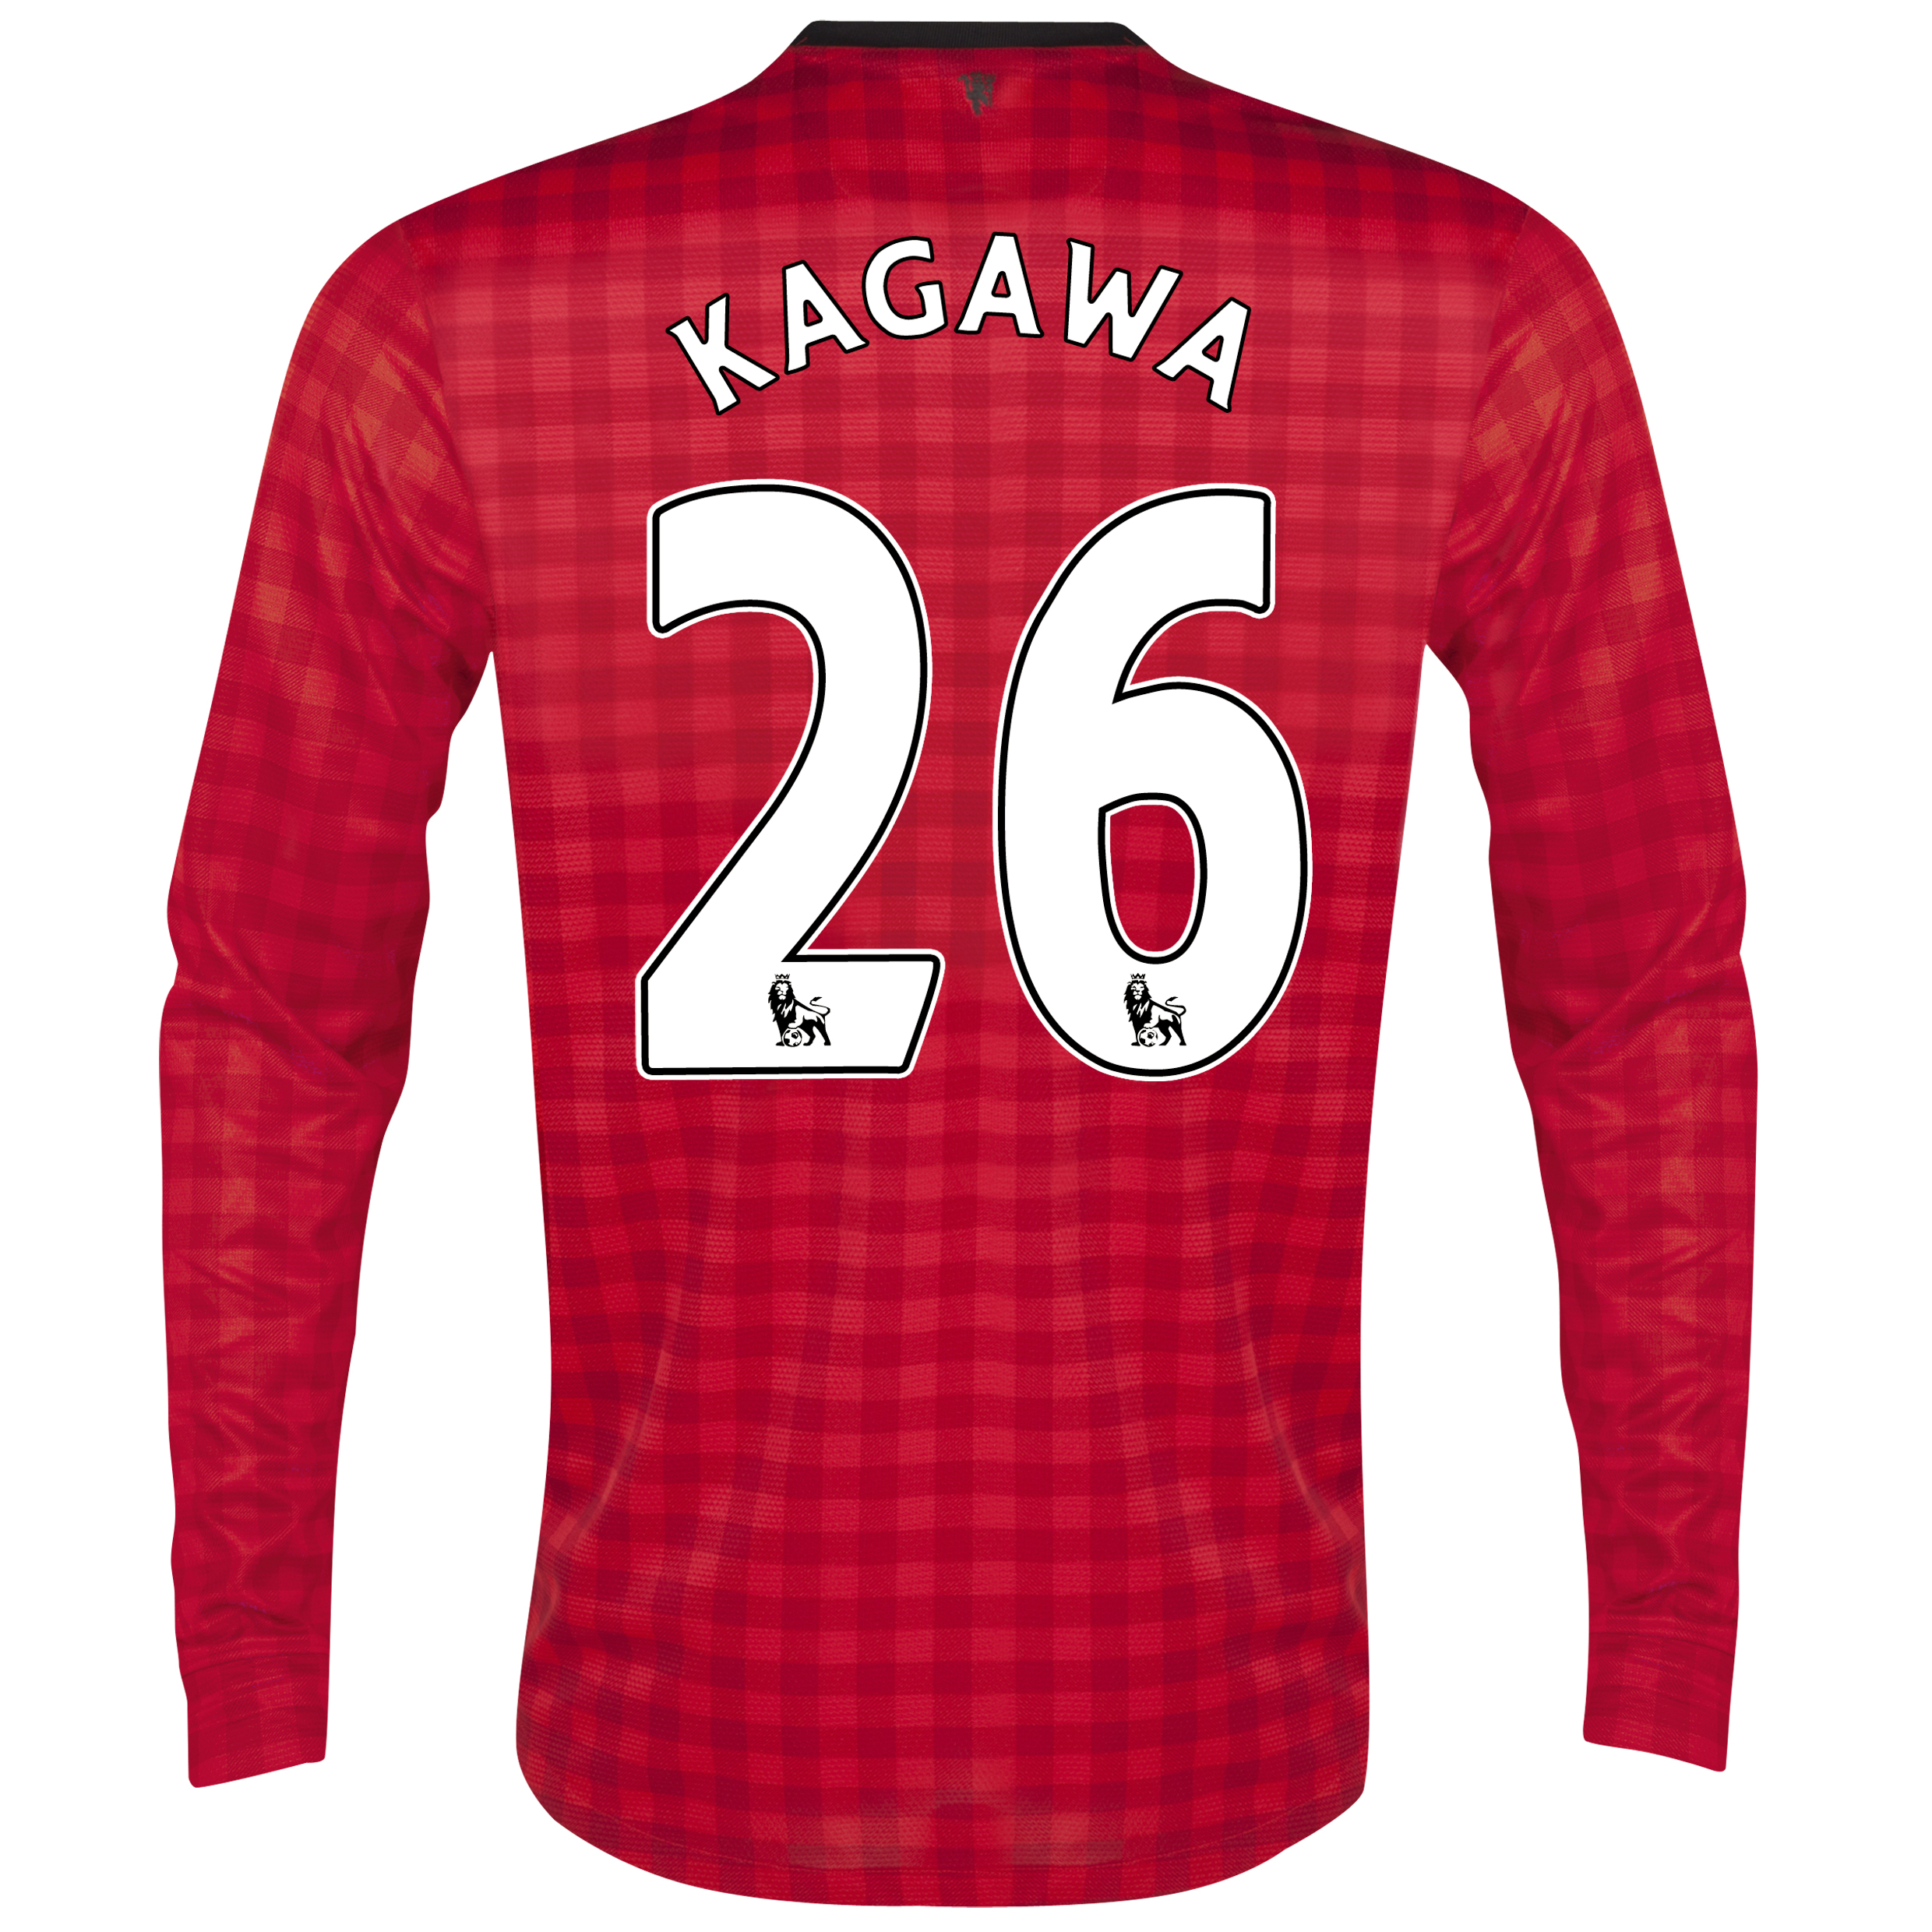 Manchester United Home Shirt 2012/13 - Long Sleeved with Kagawa 26 printing